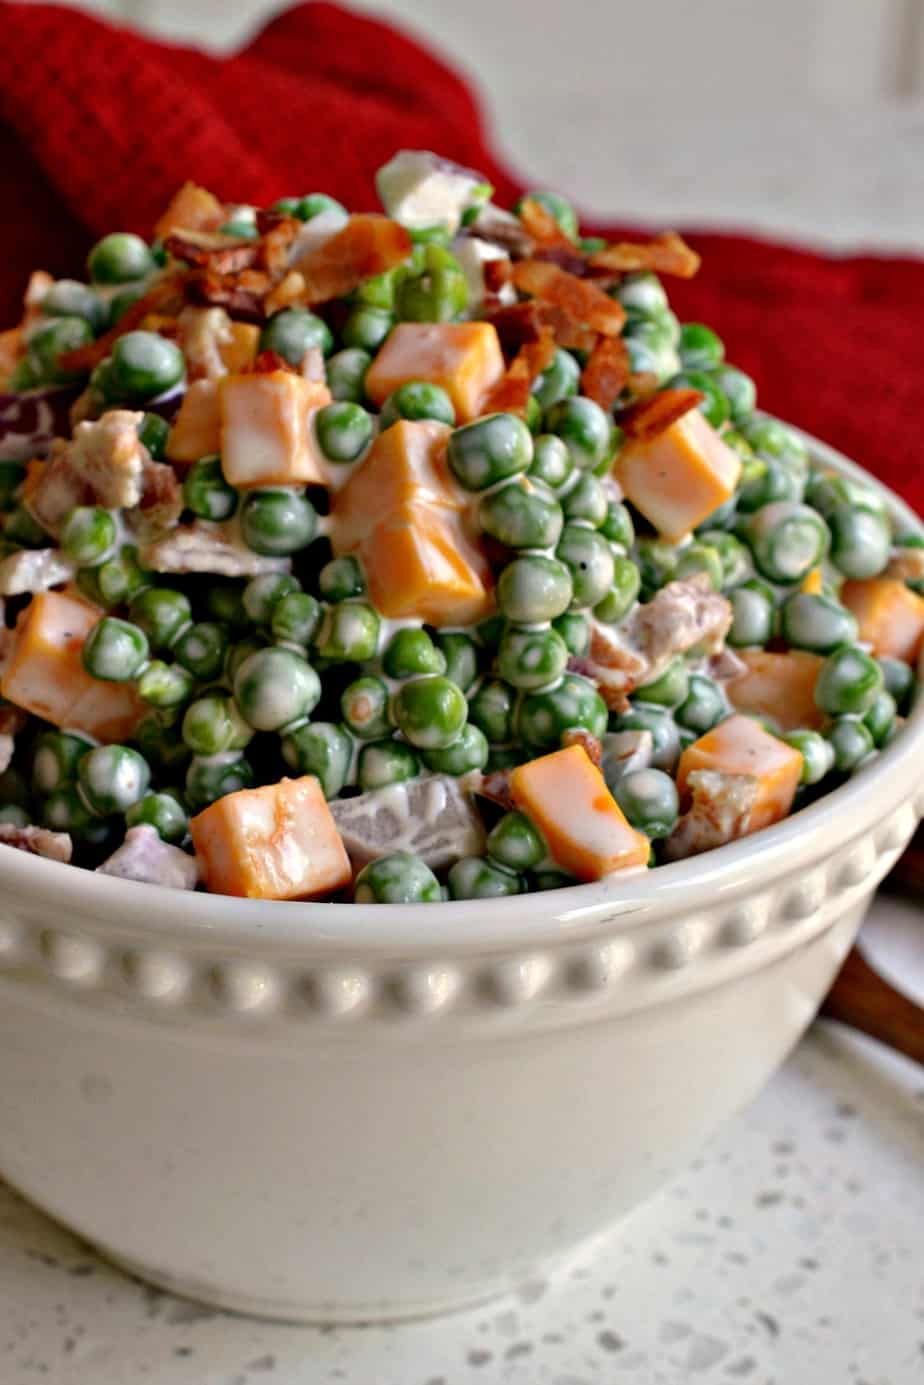 Creamy Pea Salad combines sweet peas, crispy bacon, red onion and cheddar cheese in a creamy five ingredient dressing.